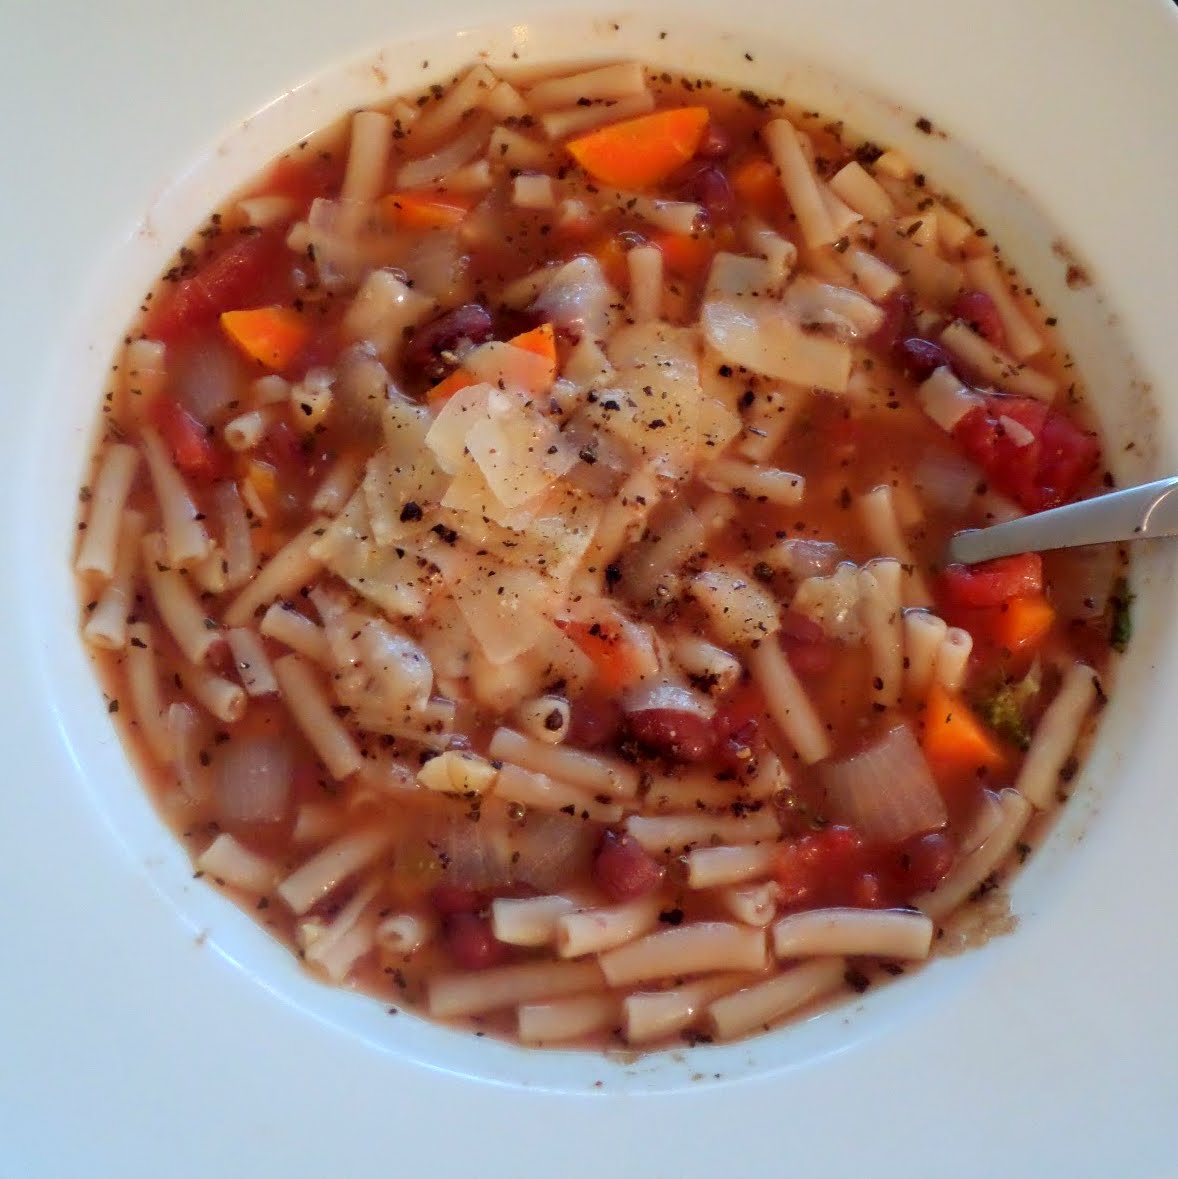 Minestrone Soup:  A simple, vegetarian, Italian style soup made with vegetables, beans, pasta, tomatoes and spices.